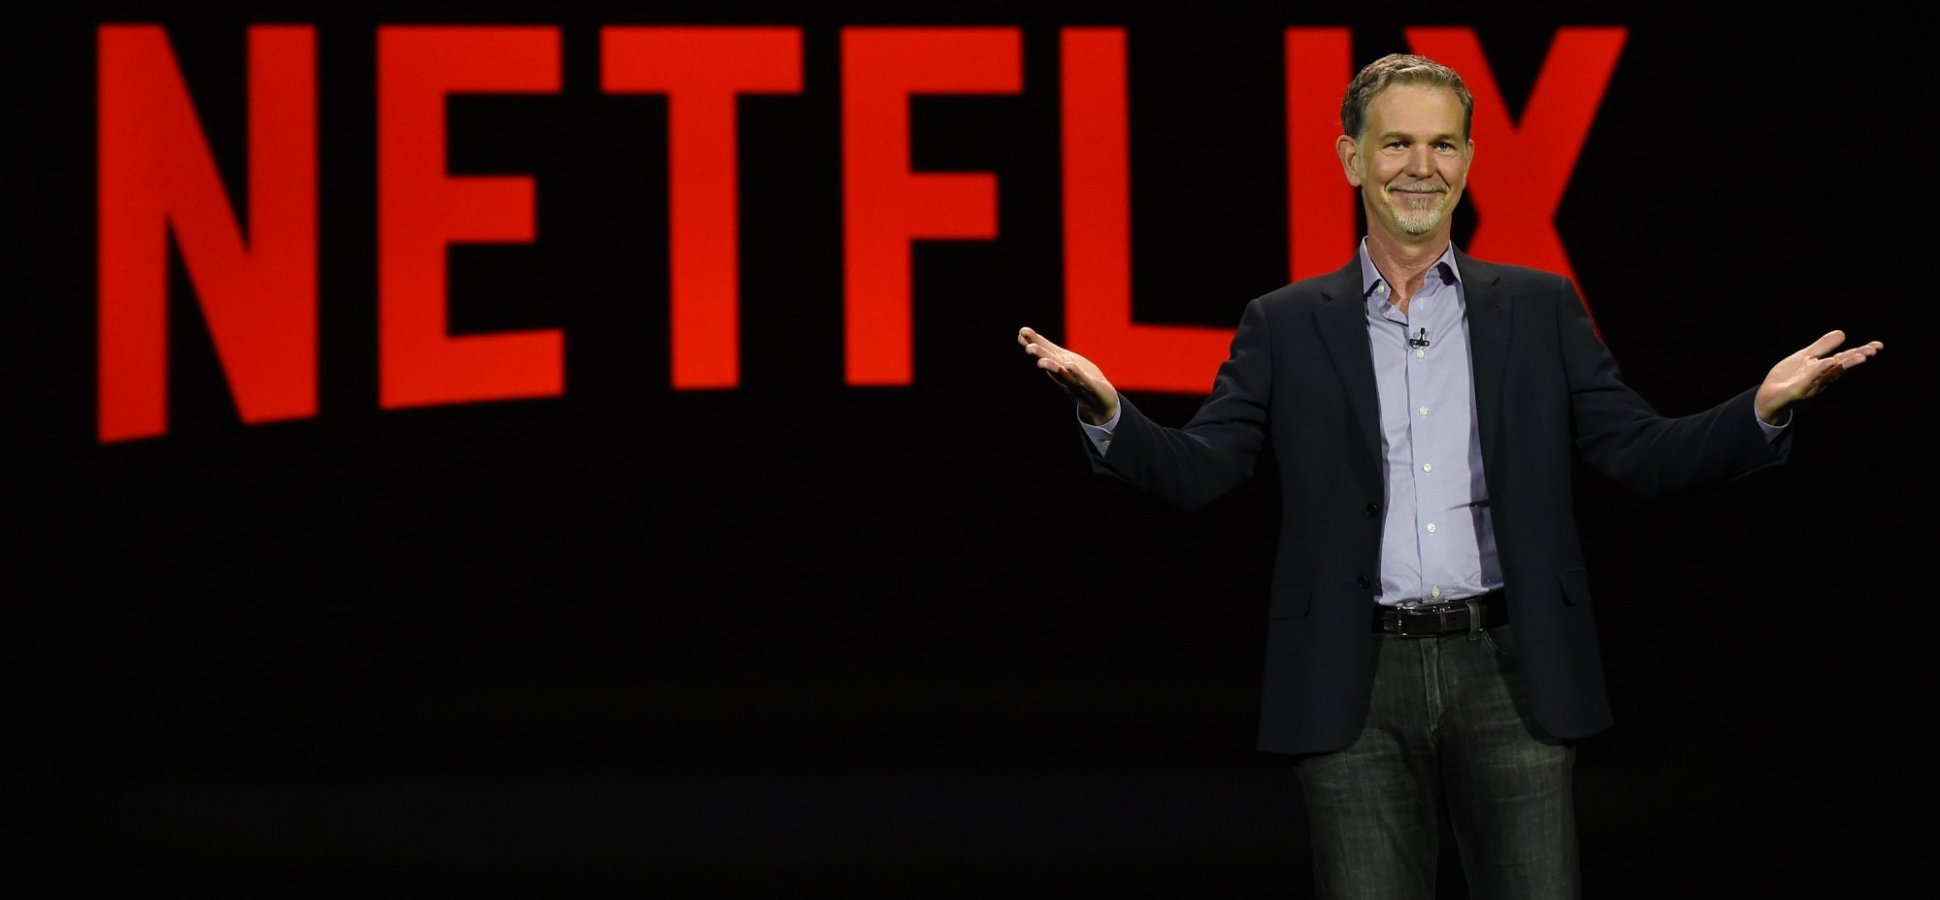 Netflix Founder Reed Hastings Says 1 Decision Separates People Who Achieve Success From Those Who Only Dream